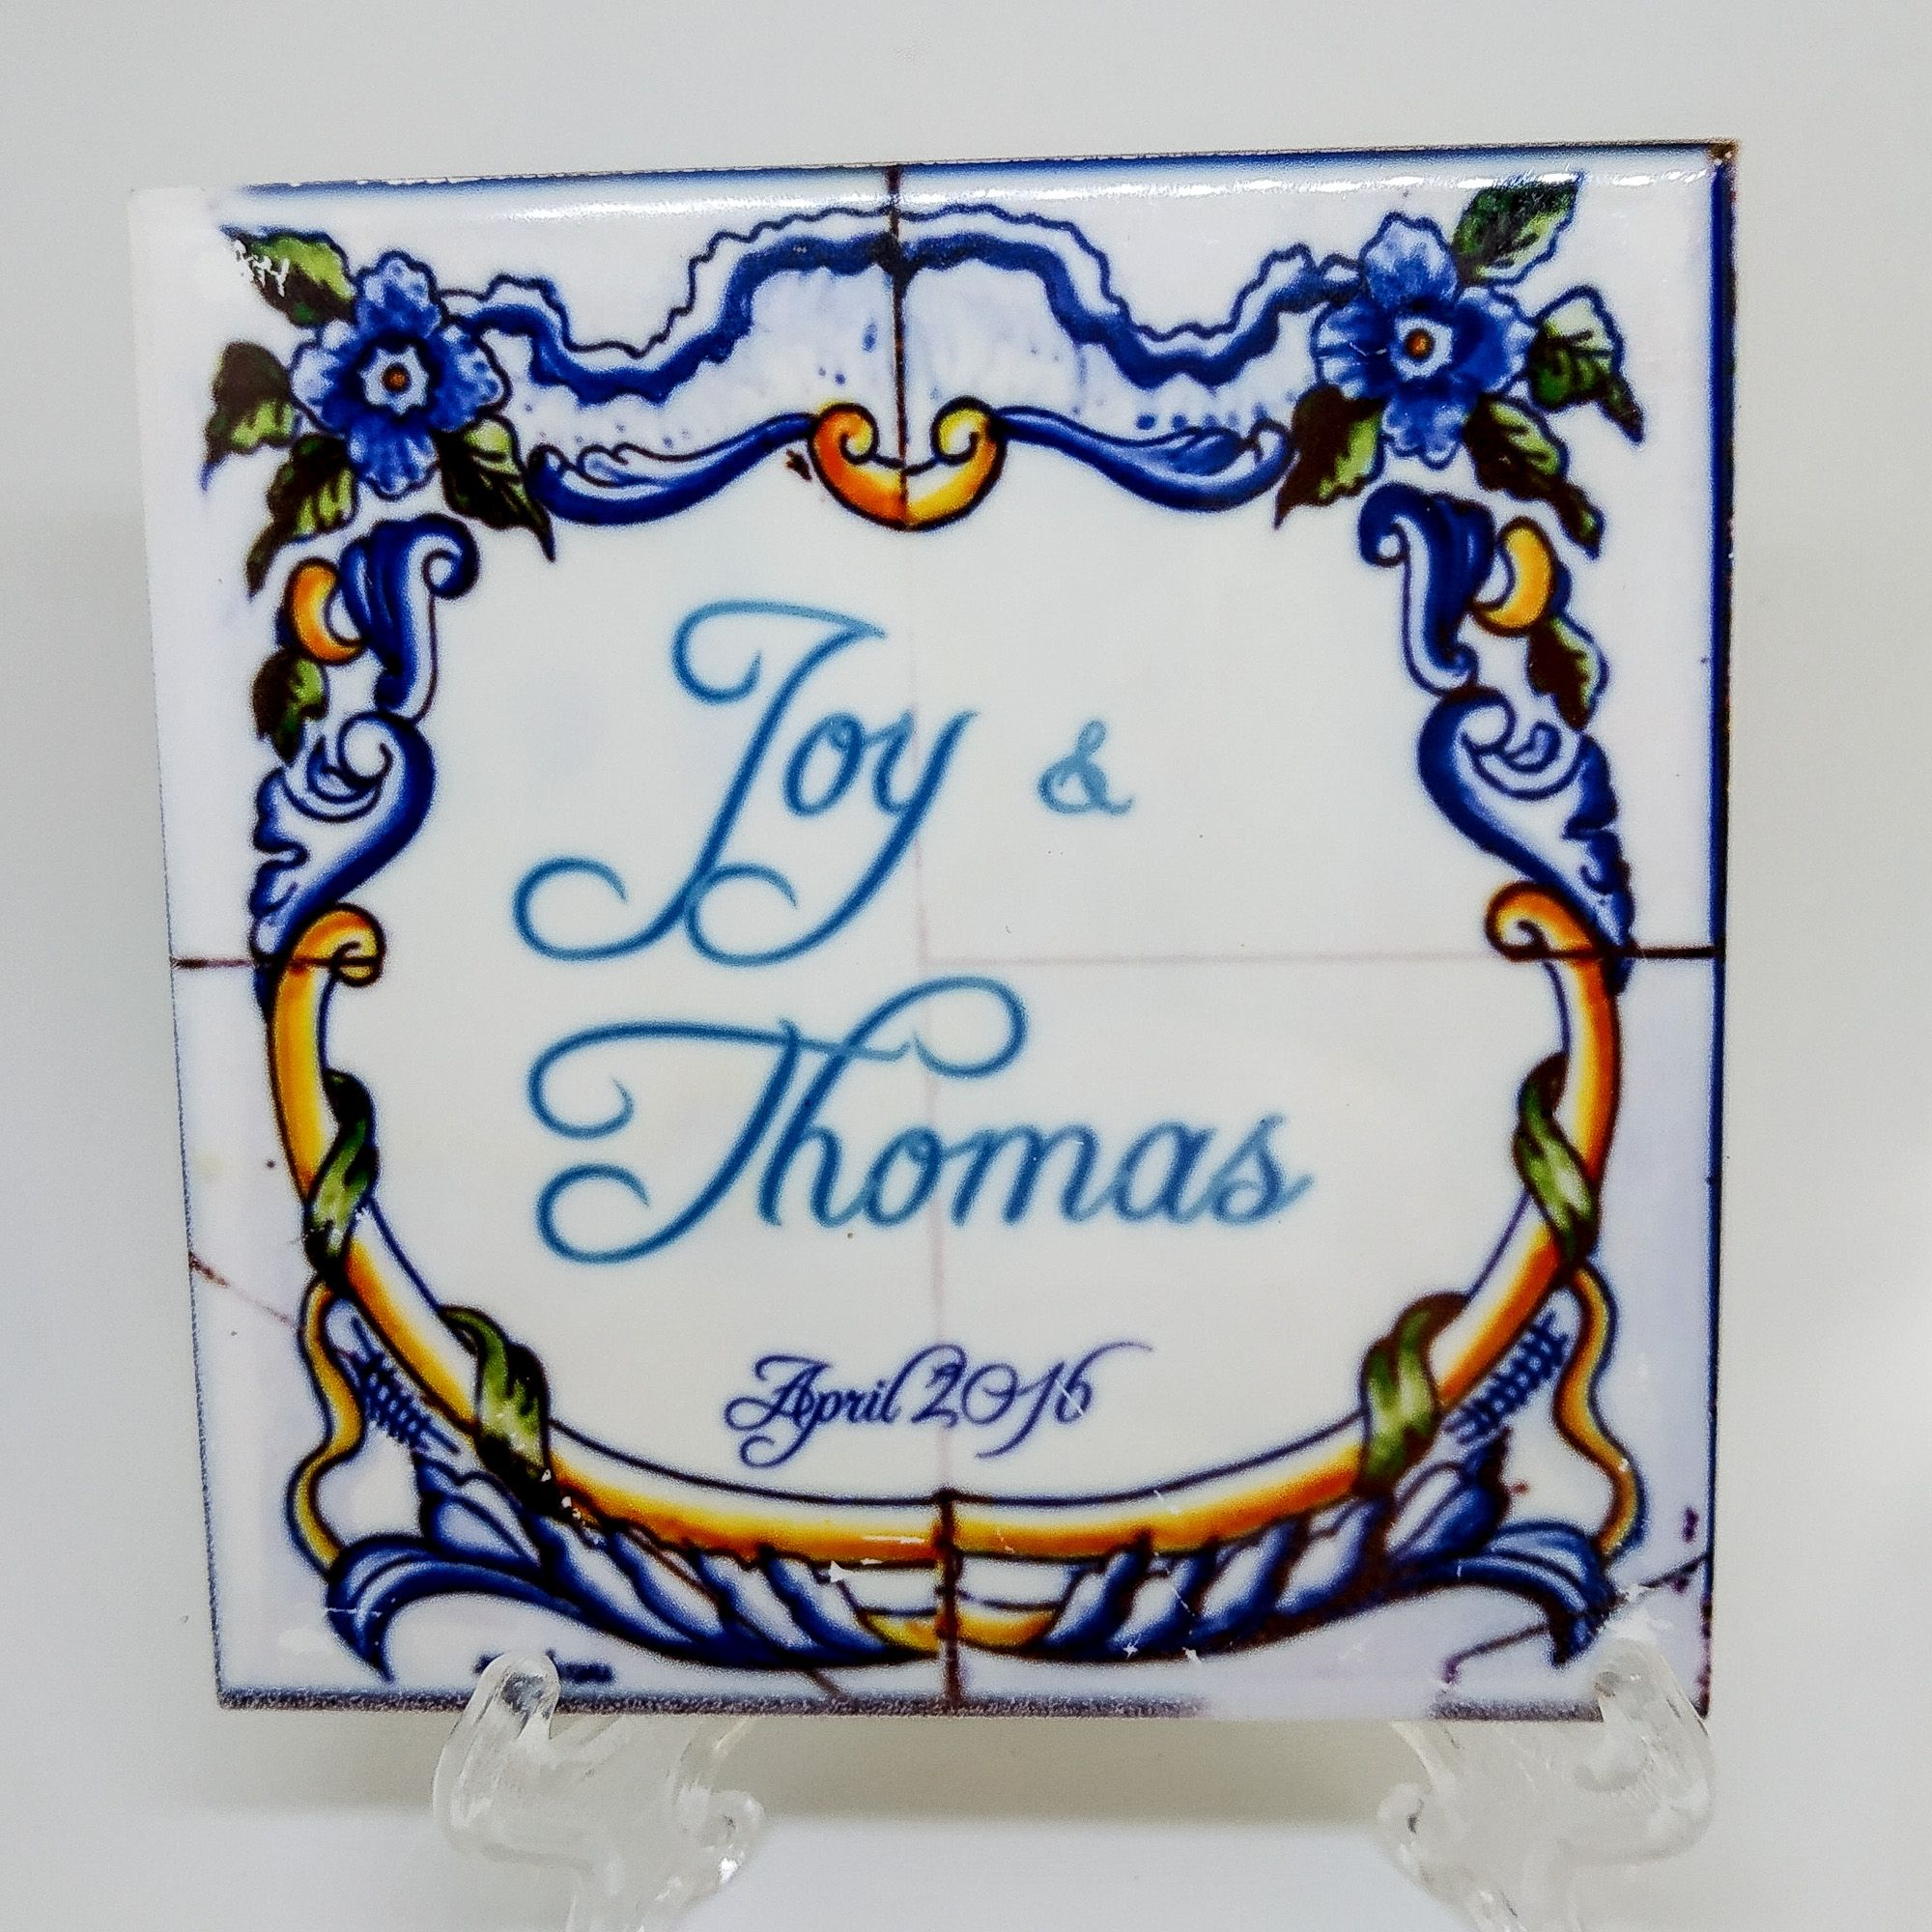 Products Page 4 Traditional Portuguese Weddings Gifts Azulejos Portugueses Azulejos Ligue Para